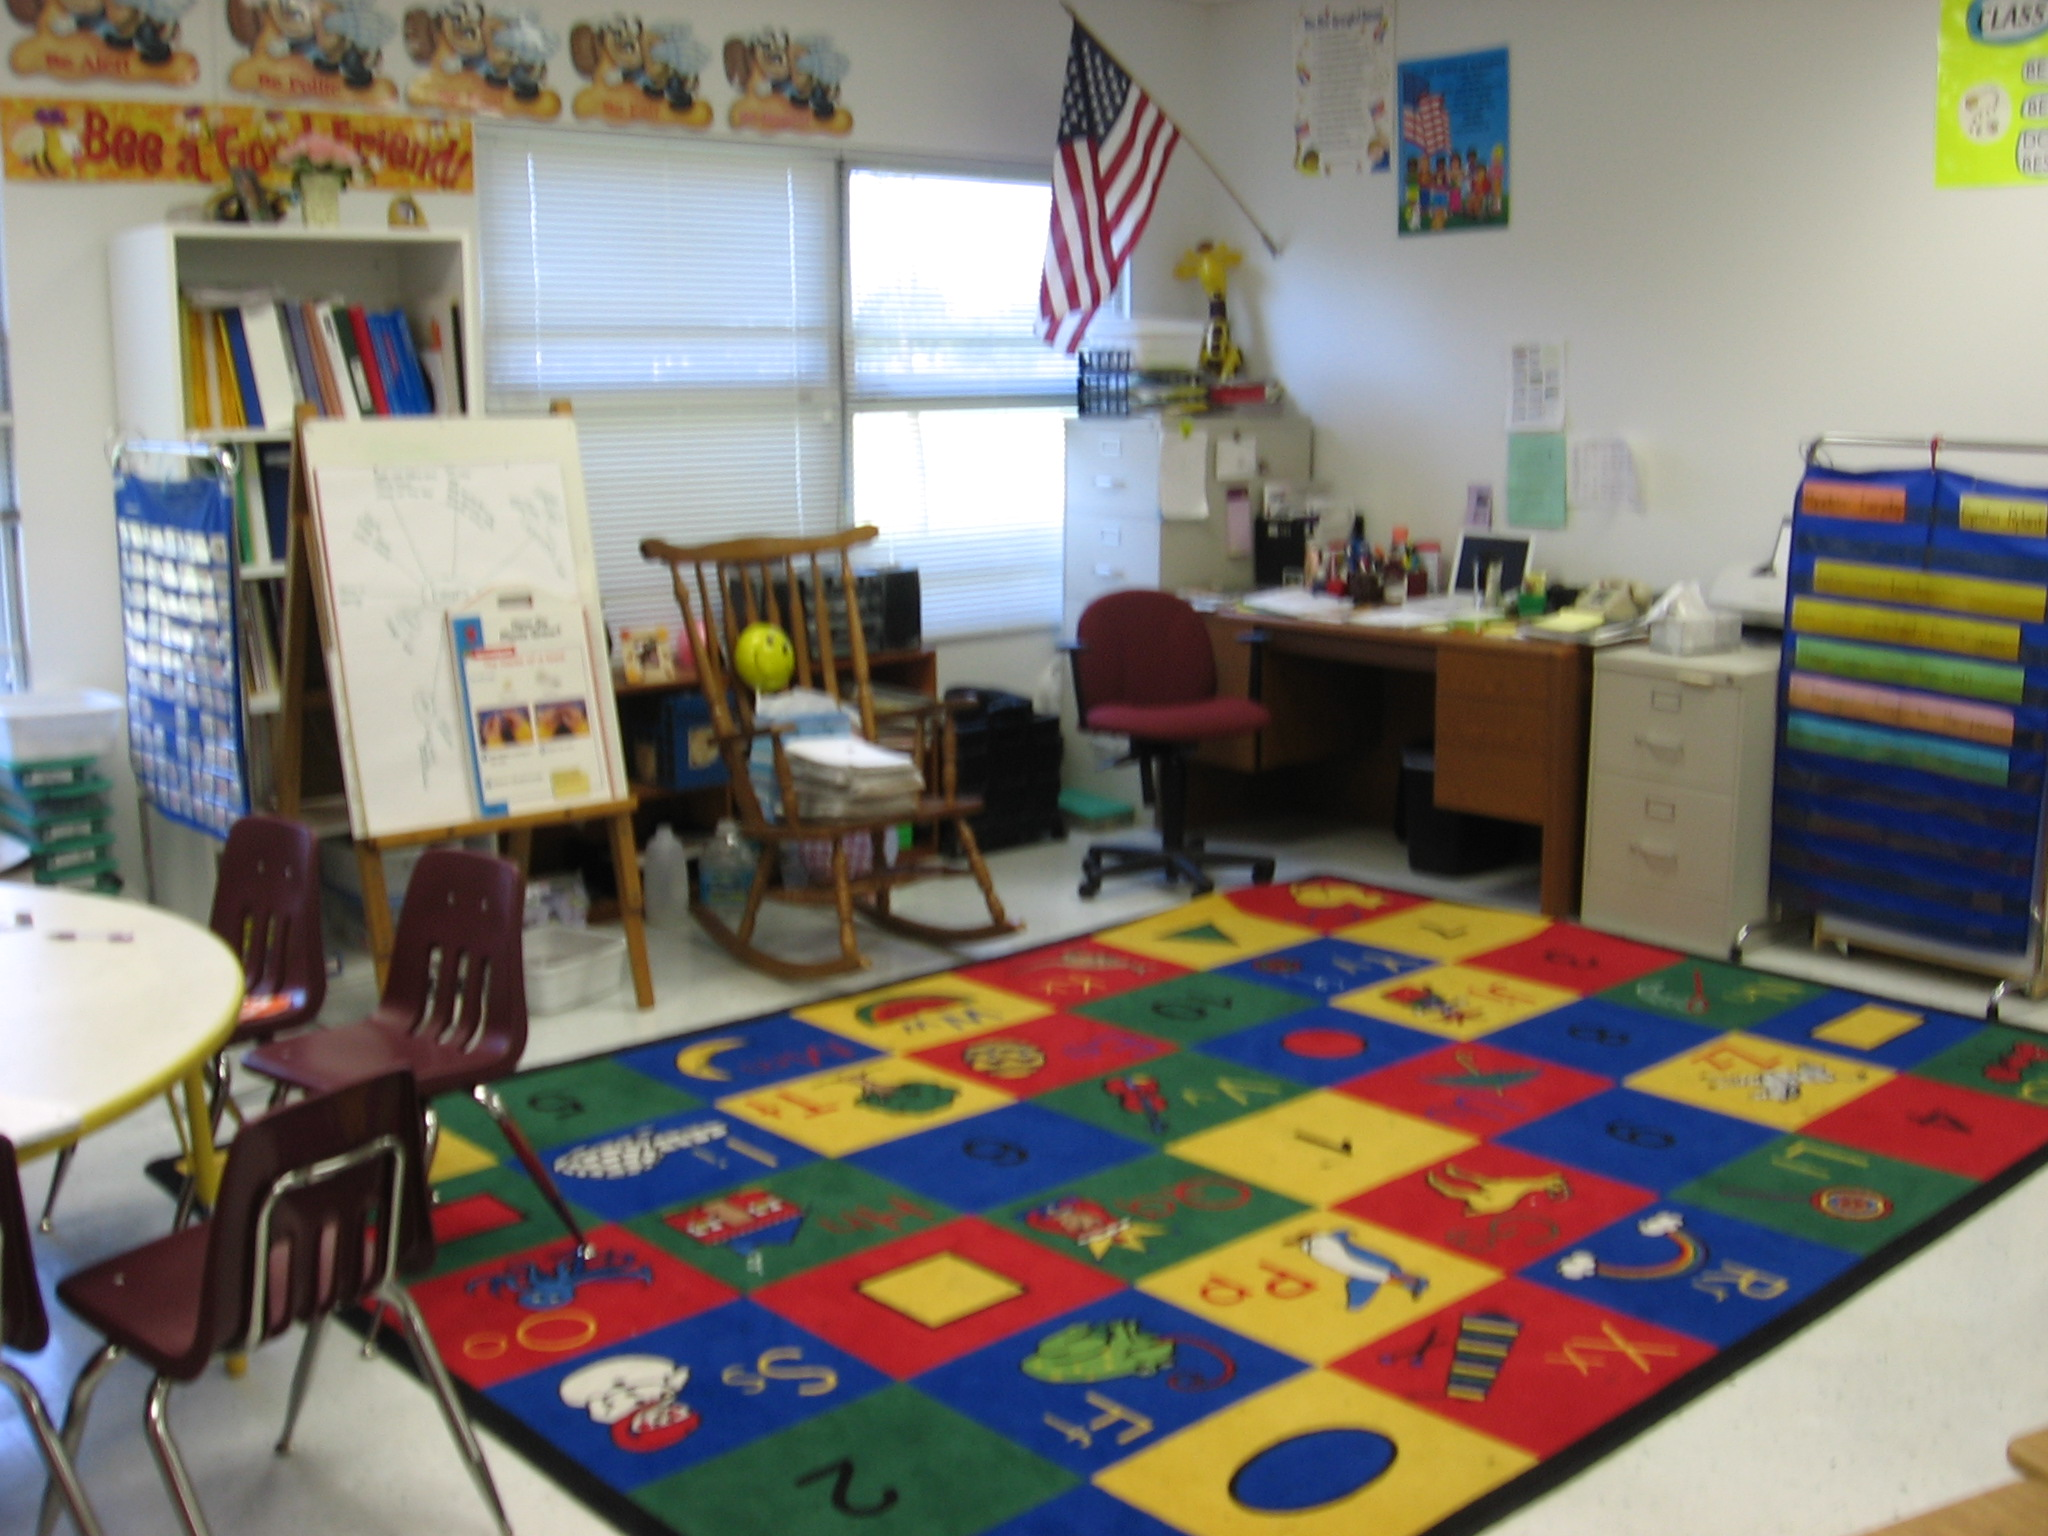 1st Grade. I also like the idea of having the gathering place so close to the teacher's desk–very convenient.